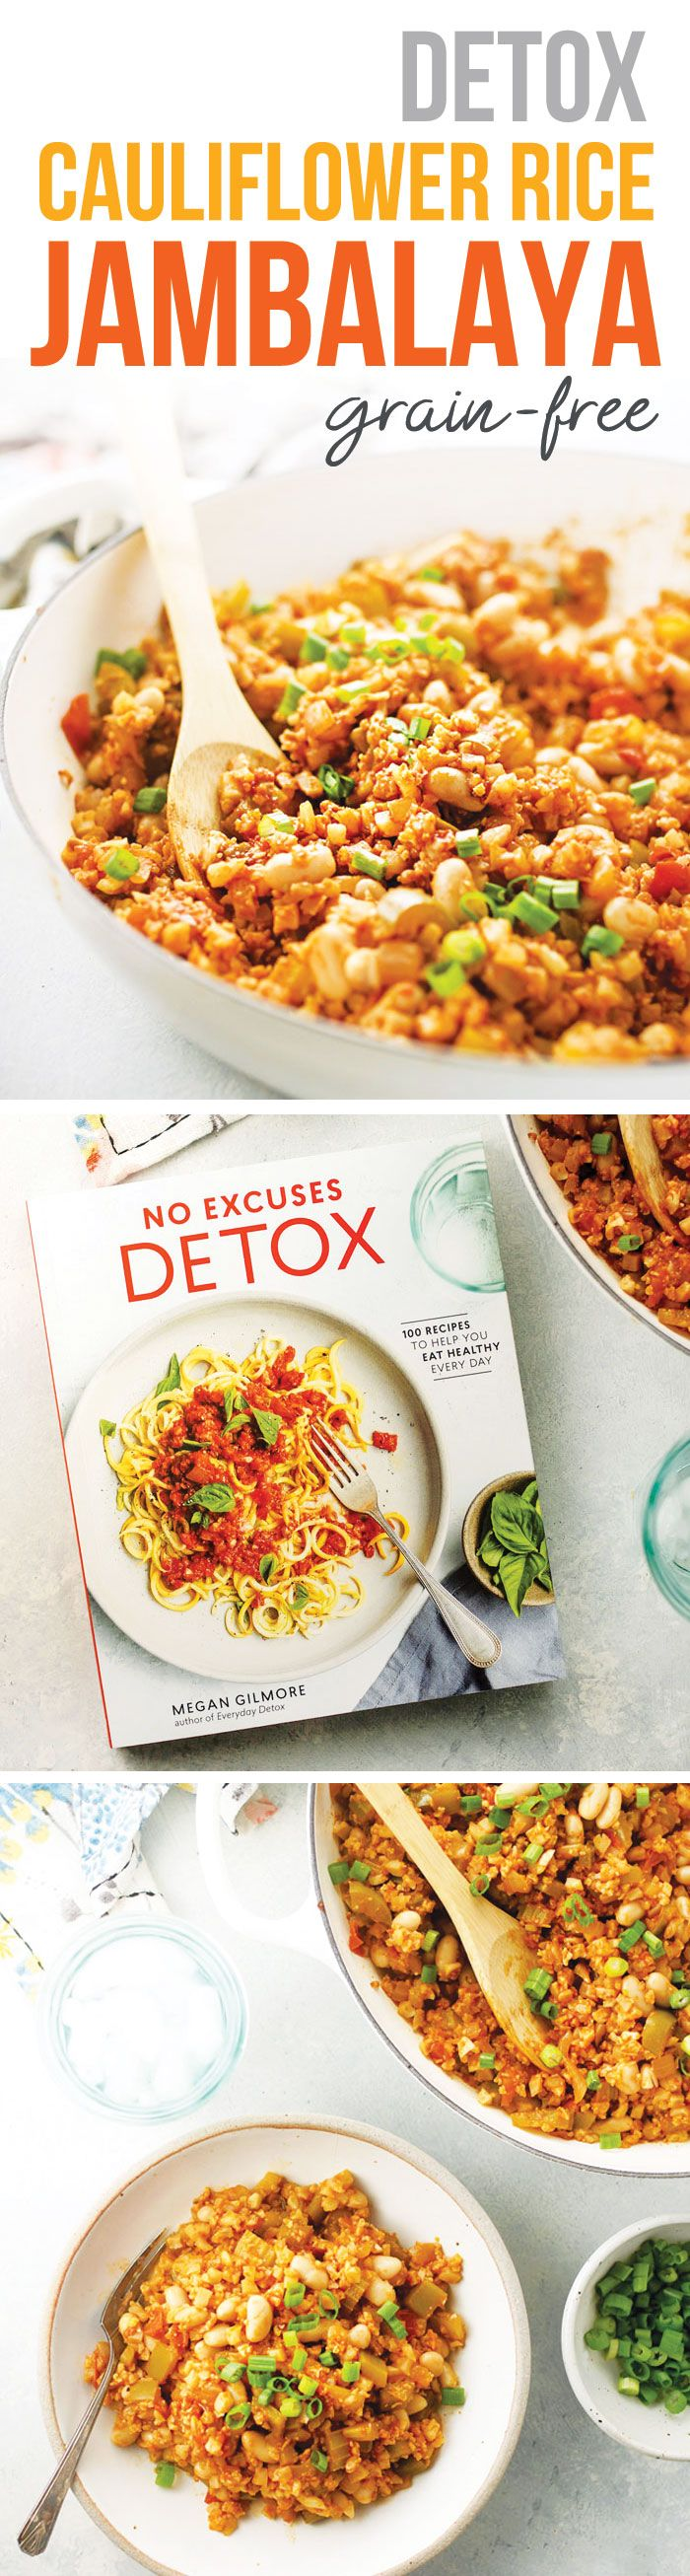 This Detox Cauliflower Rice Jambalaya is a healthy and flavorful vegetarian skillet meal! Perfect for those on a grain-free and dairy-free diet. It's vegan as written, but can also be modified to be paleo friendly. Recipe from the cookbook, No Excuses Detox.